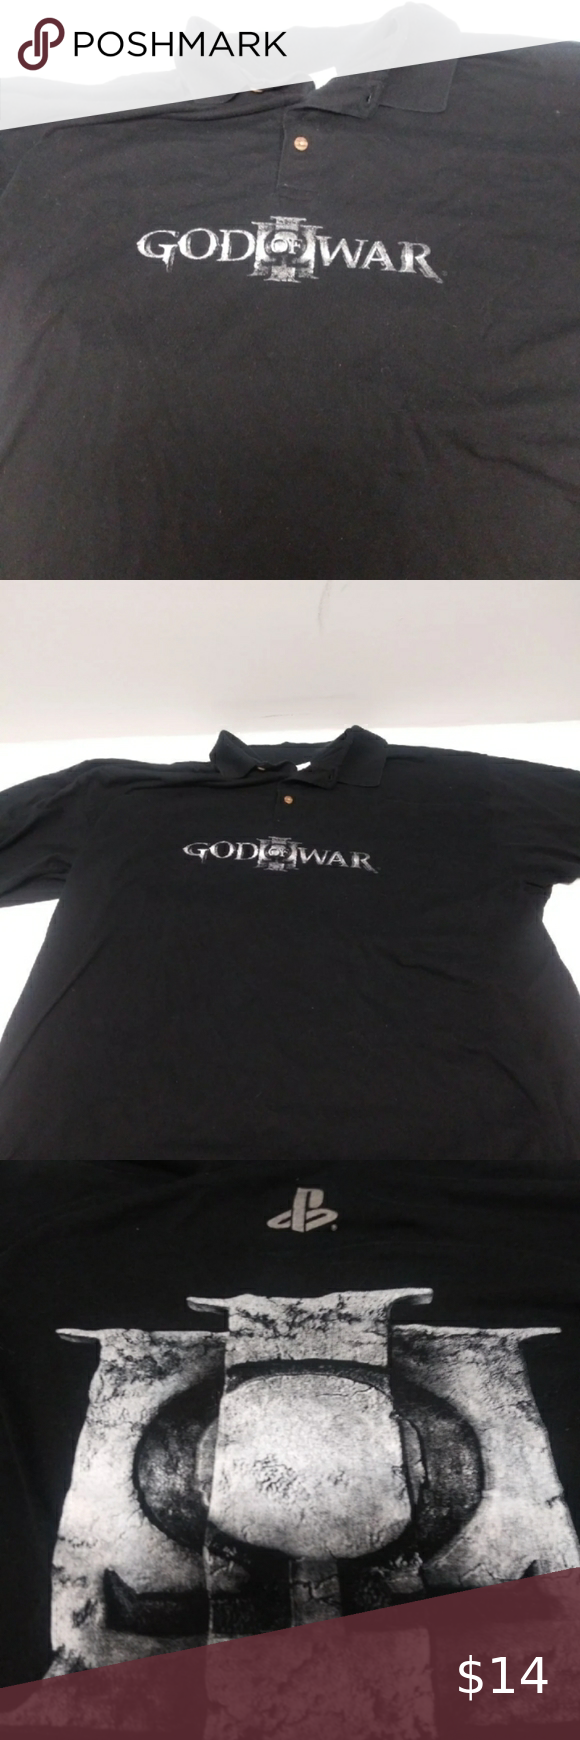 God Of War Polo Shirt Very Dusty Unisex Xl Gamestop Logo Has Been Washed Offers Welcome Gamestop Shirts Polos God Of War Polo Shirt Polo